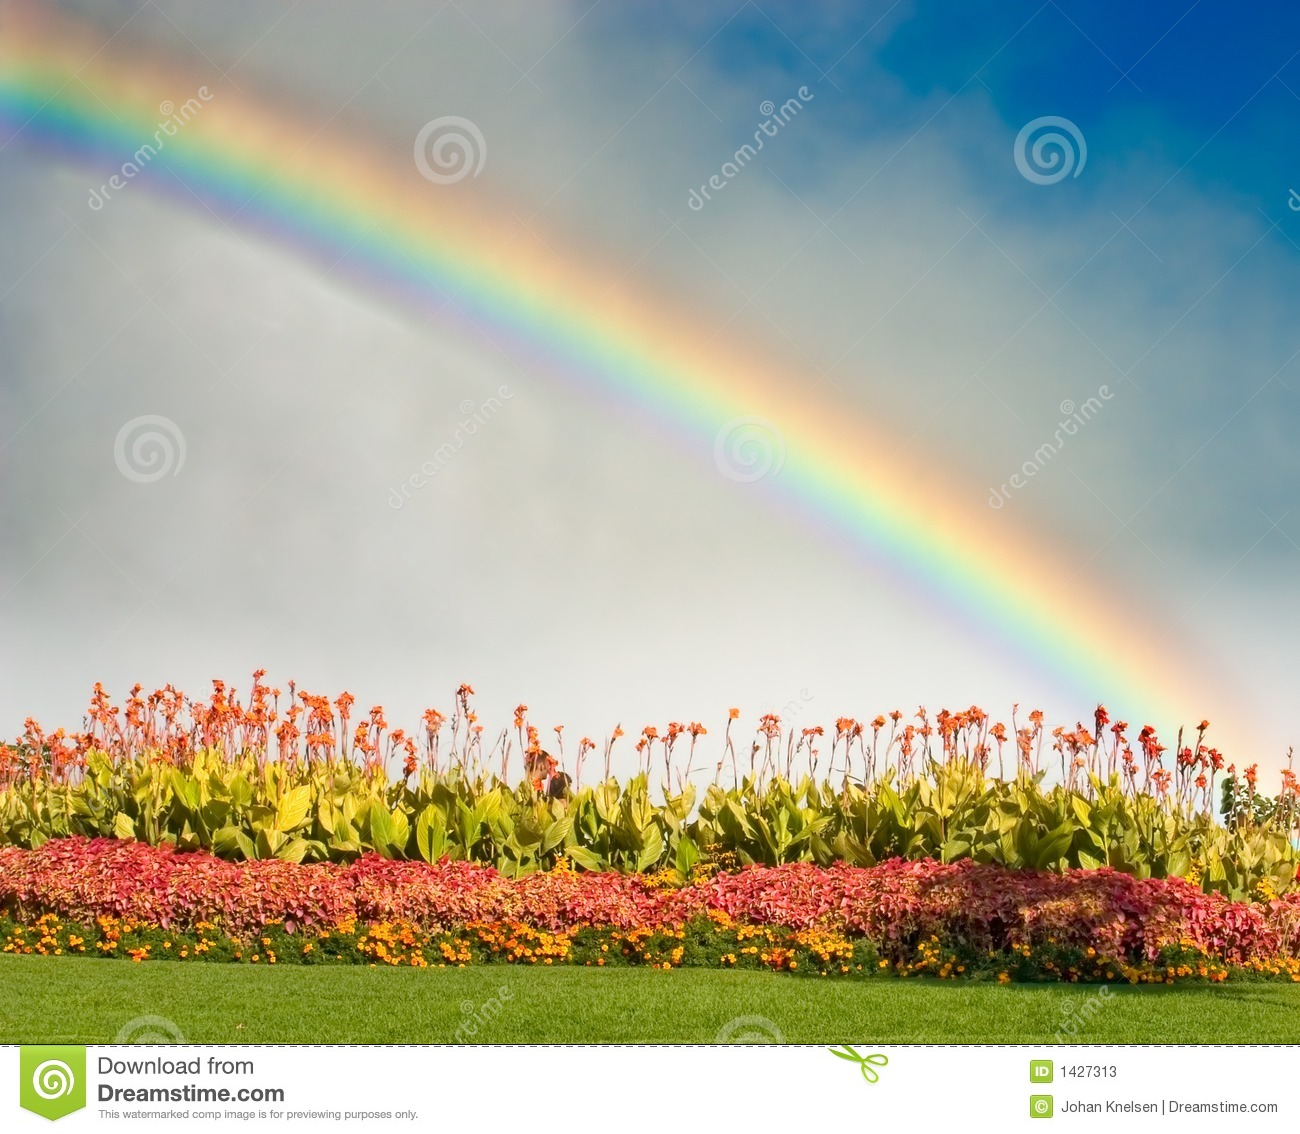 3d Sunflower Wallpaper Rainbow And Flowers Stock Photos Image 1427313